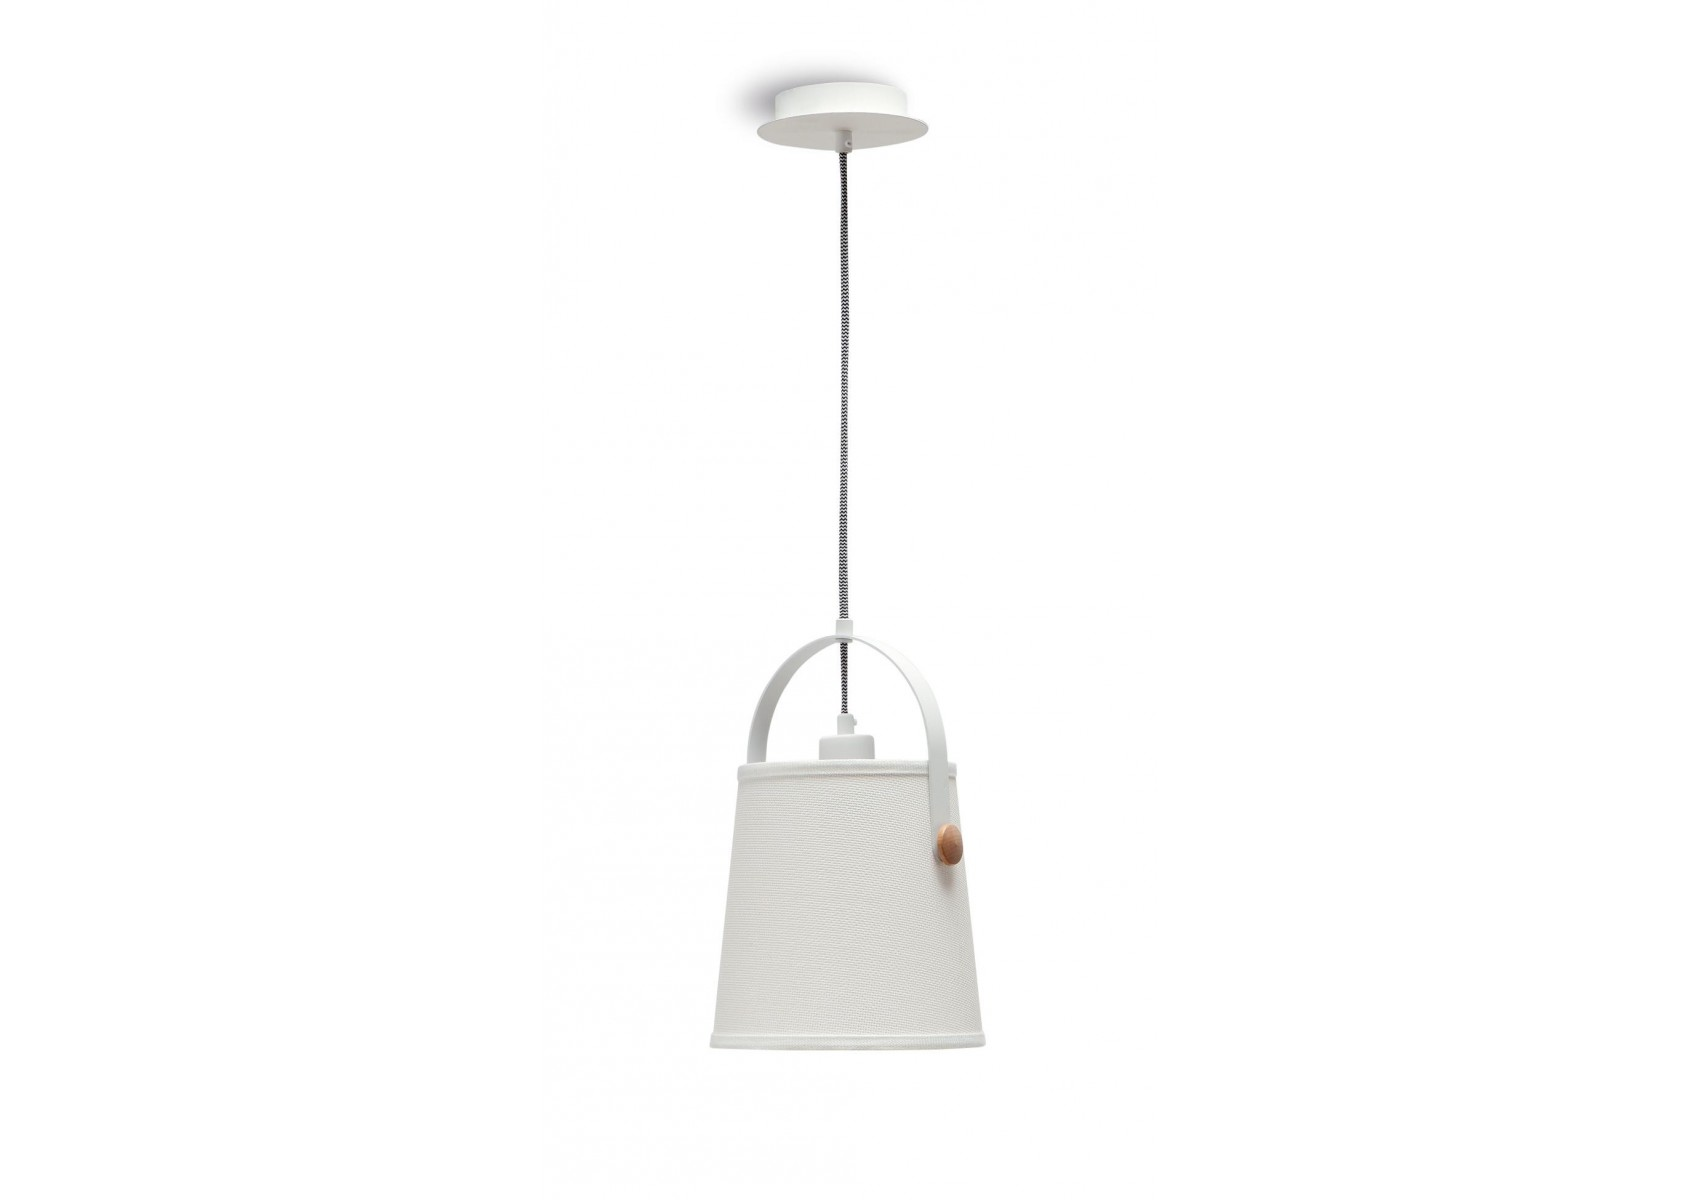 Suspensions Scandinaves Suspension Design Scandinave Nordica Par Mantra